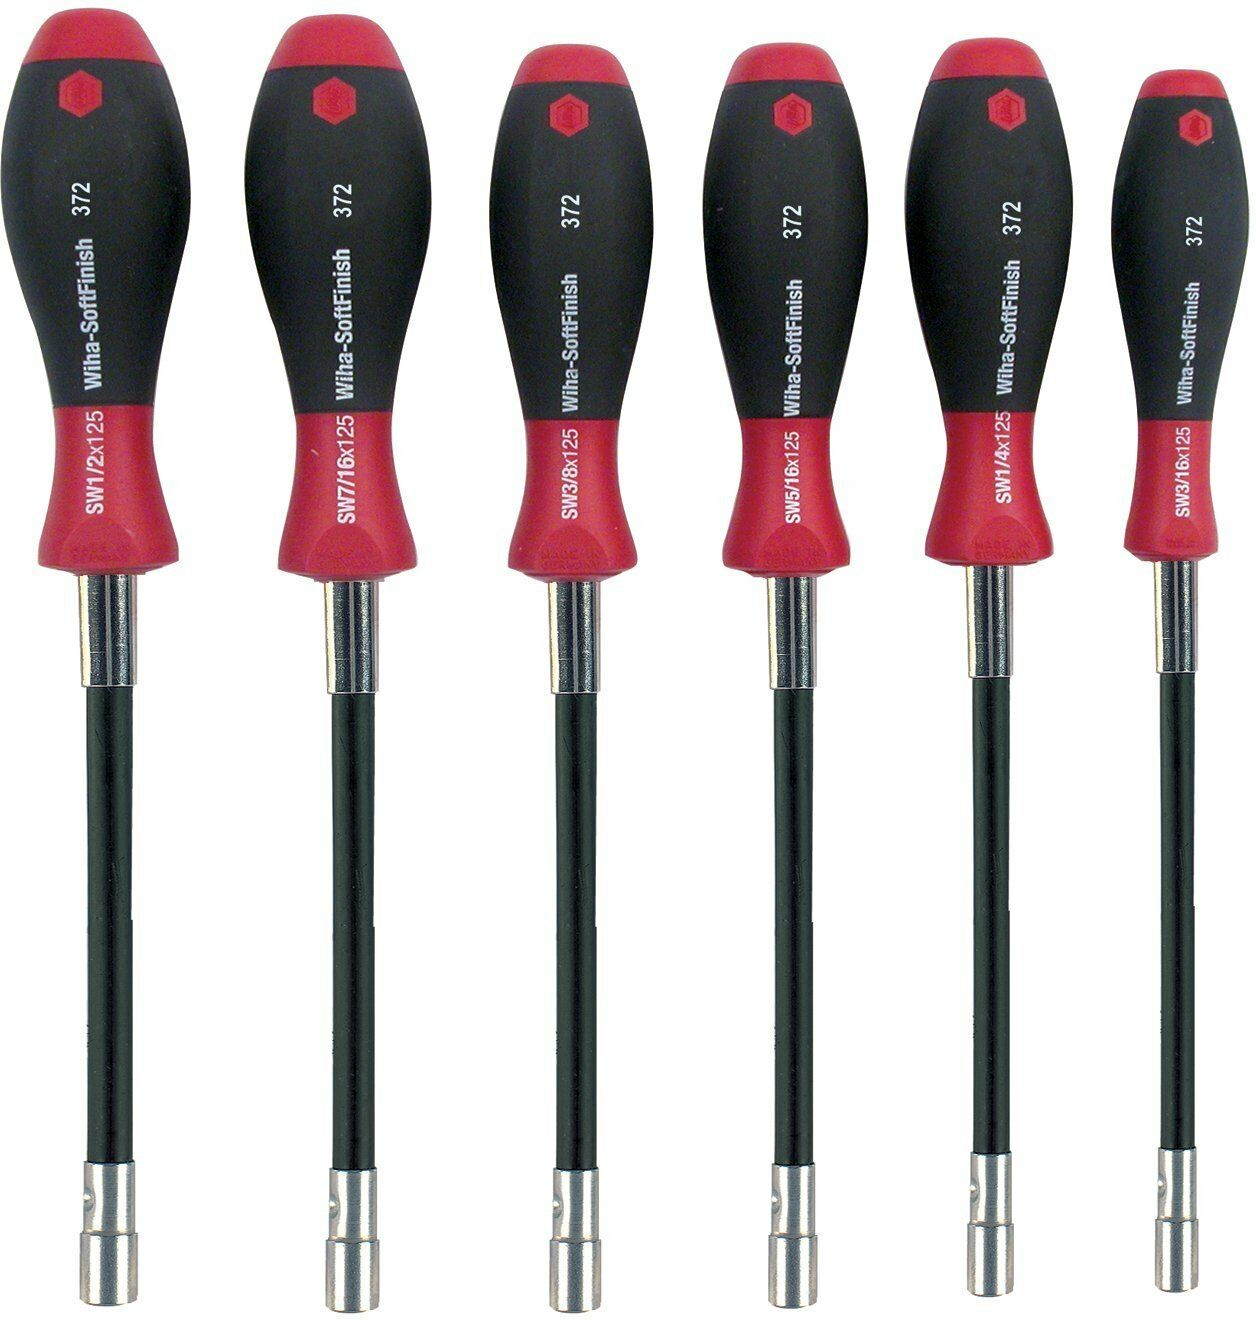 Wiha 37290 Long Flexible Shaft Nut Driver Set with SoftHandles, Inch, 6 Piece